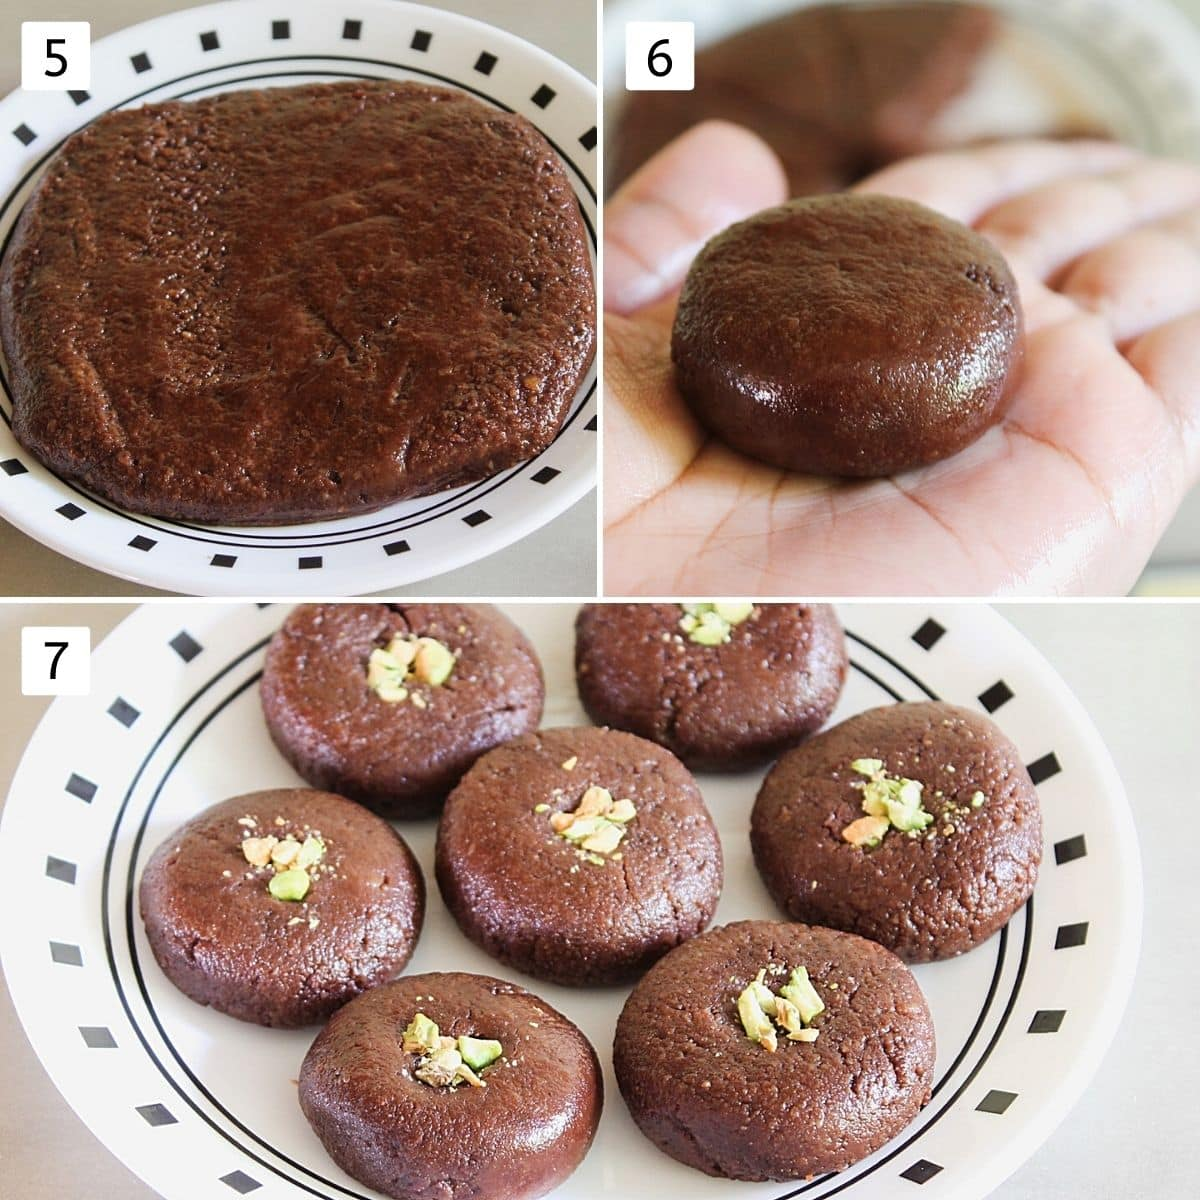 Collage of 3 images showing peda mixture in a plate, shaping peda using palm, 7 shaped chocolate peda on a plate